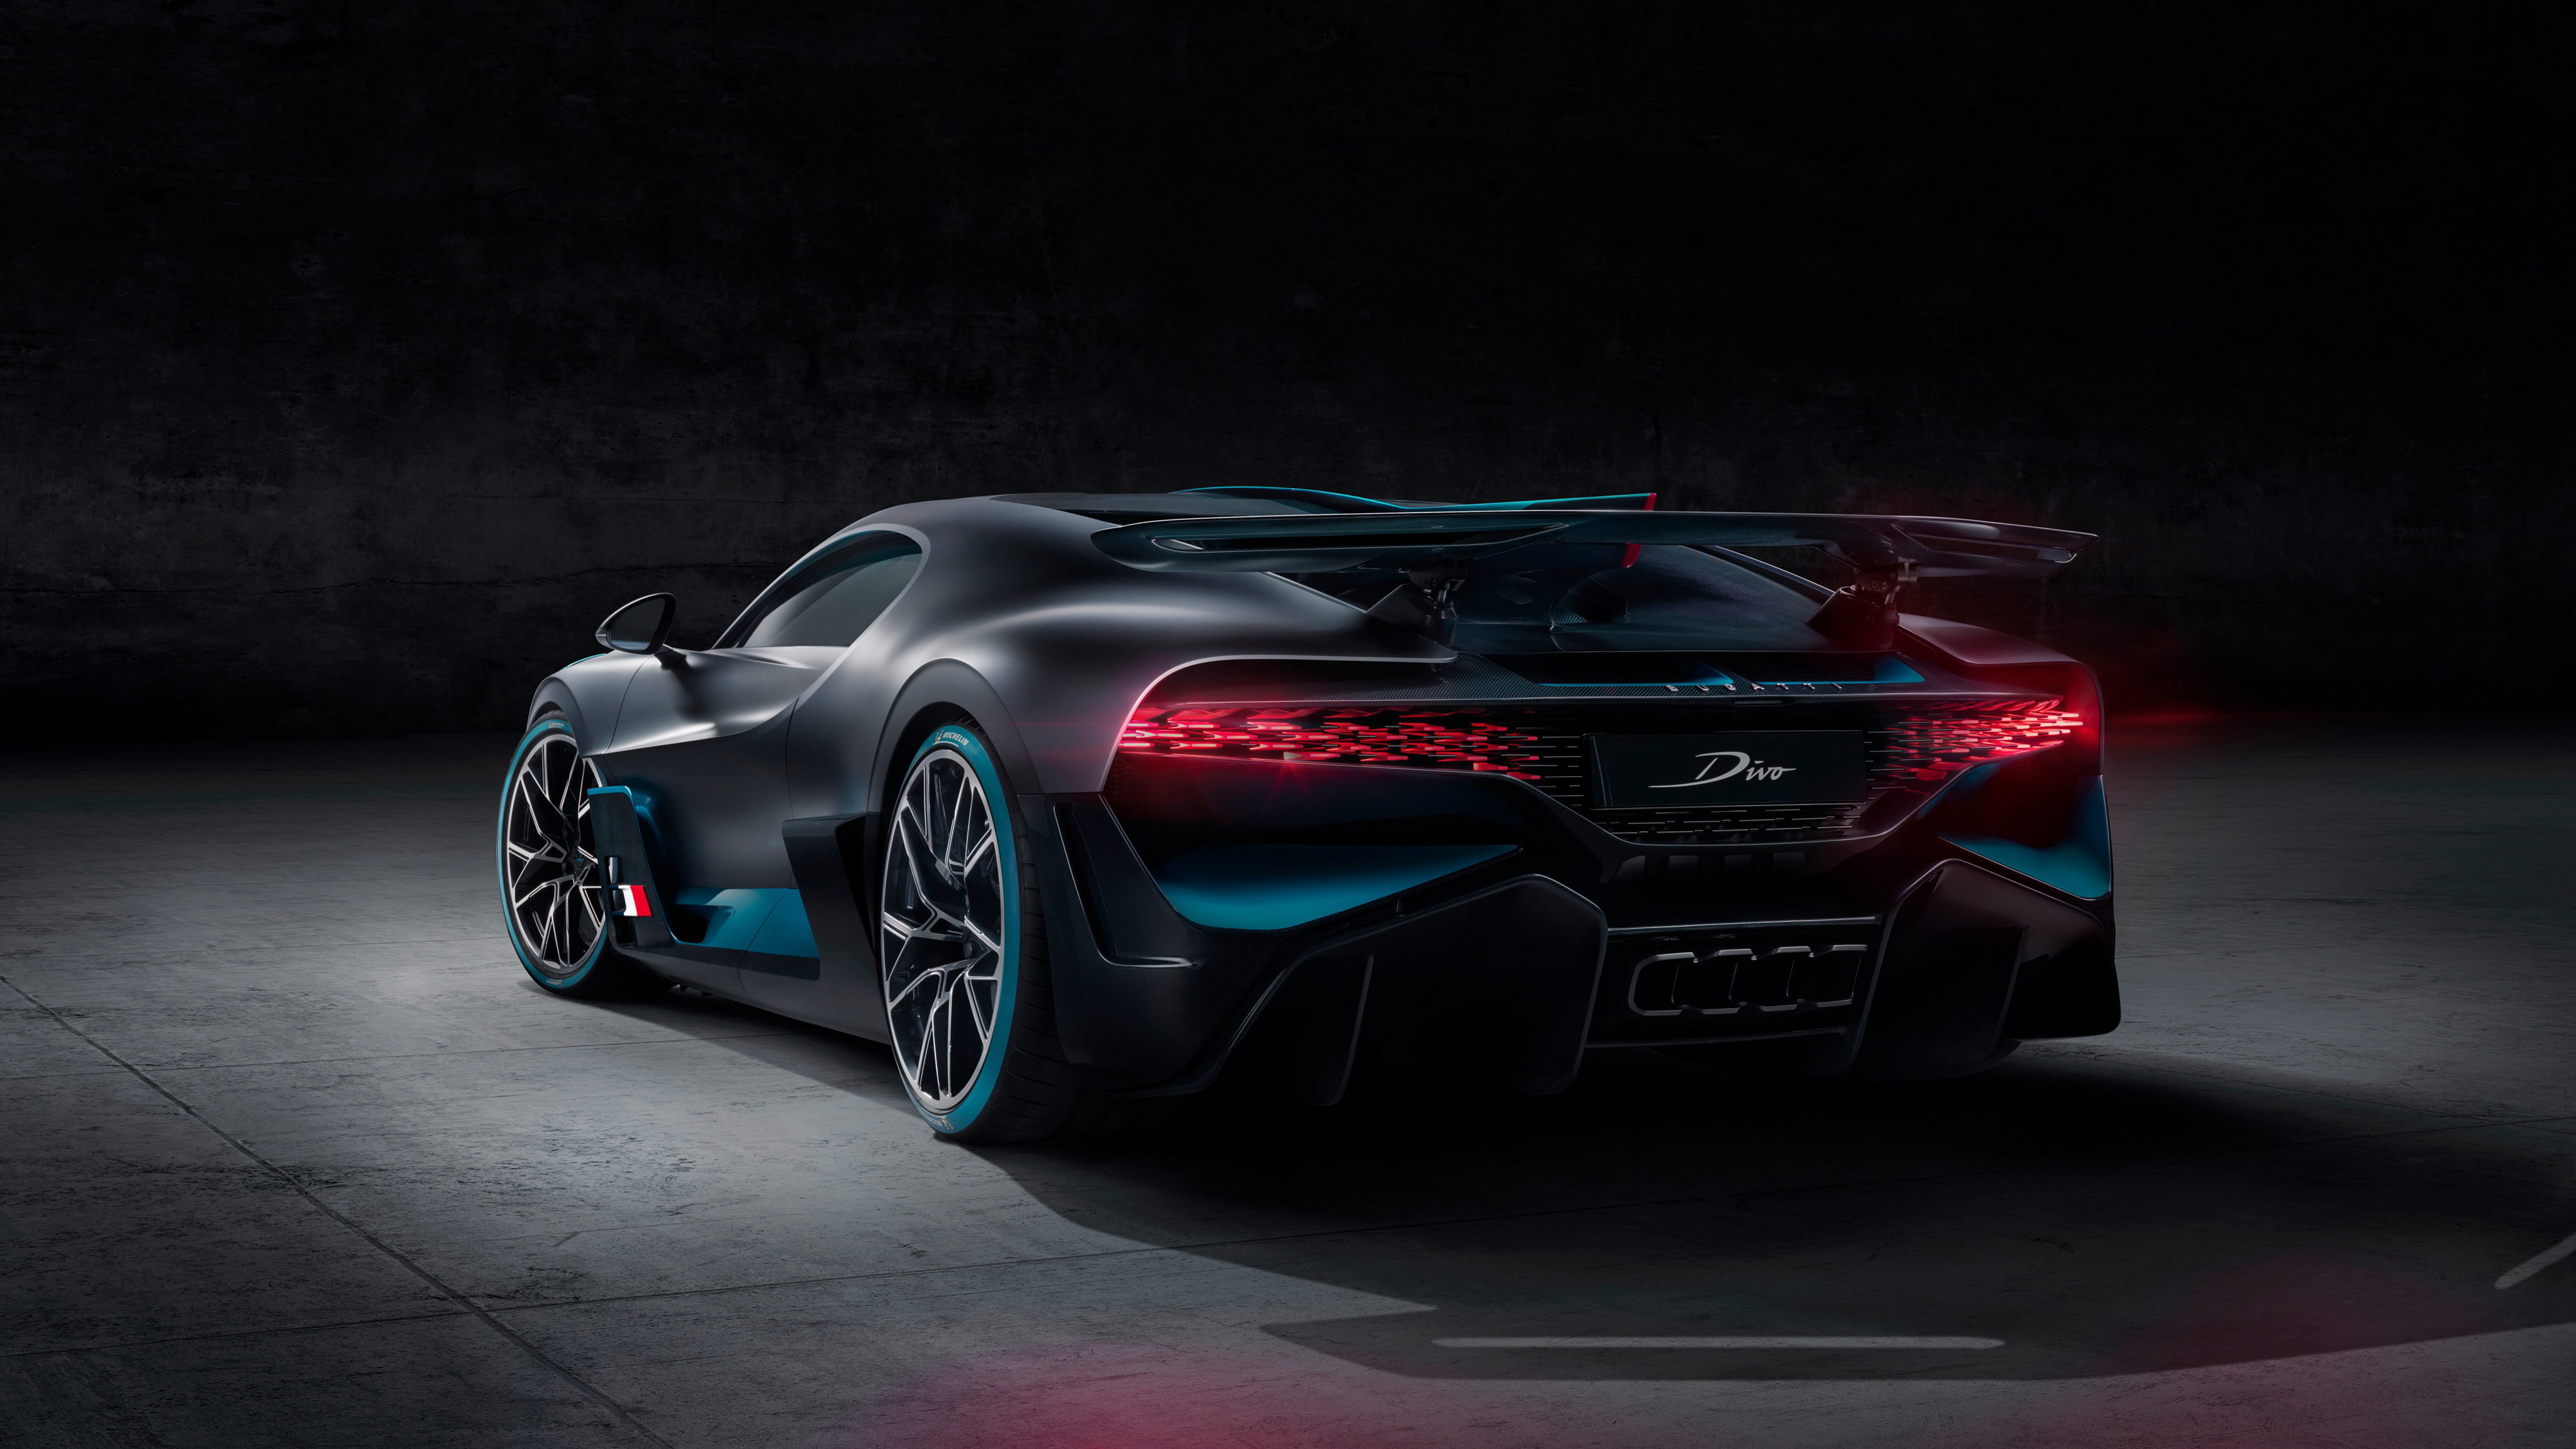 2019 Bugatti Divo 4k 7 Wallpaper Hd Car Wallpapers Id 11099